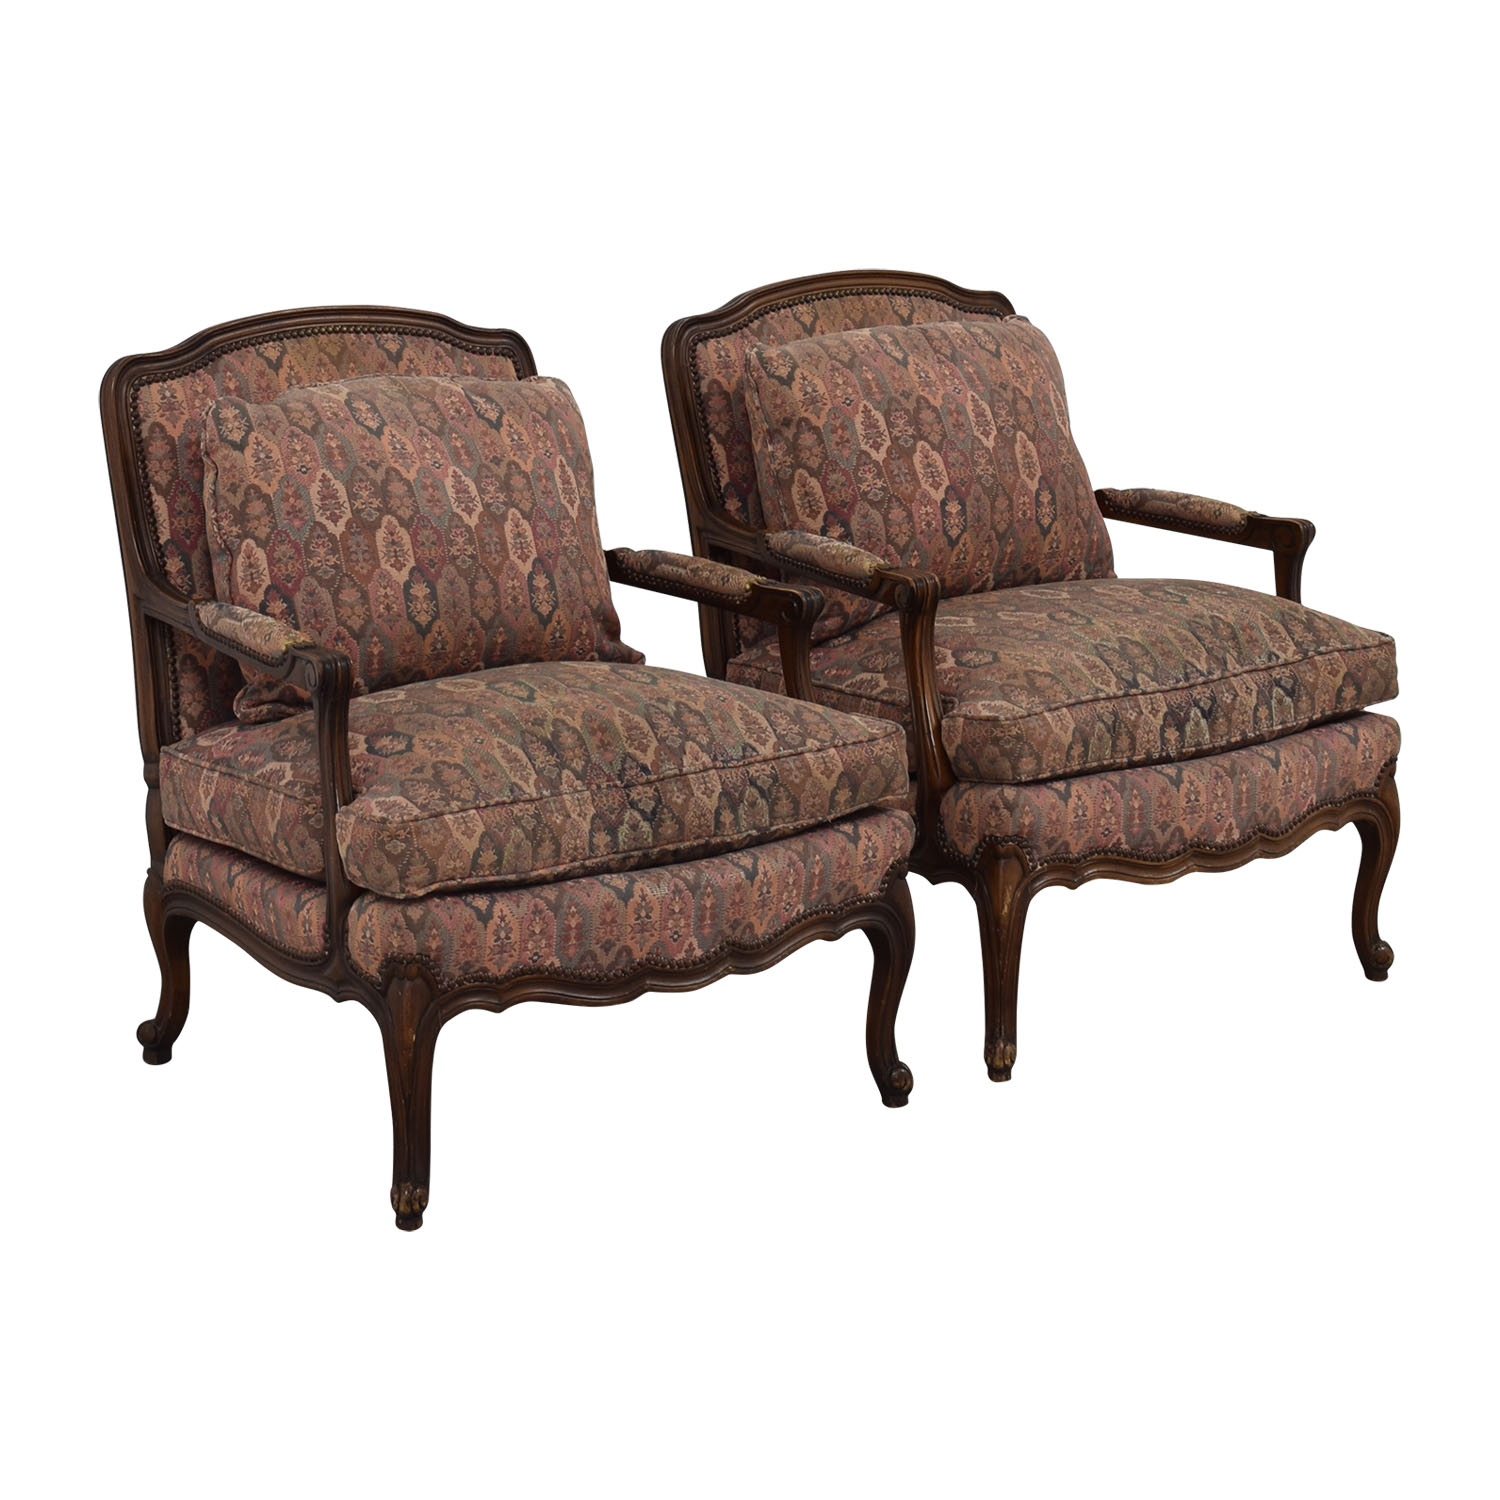 Used Wingback Chairs 85 Off Trs Furniture Trs Furniture Low Wing Back Arm